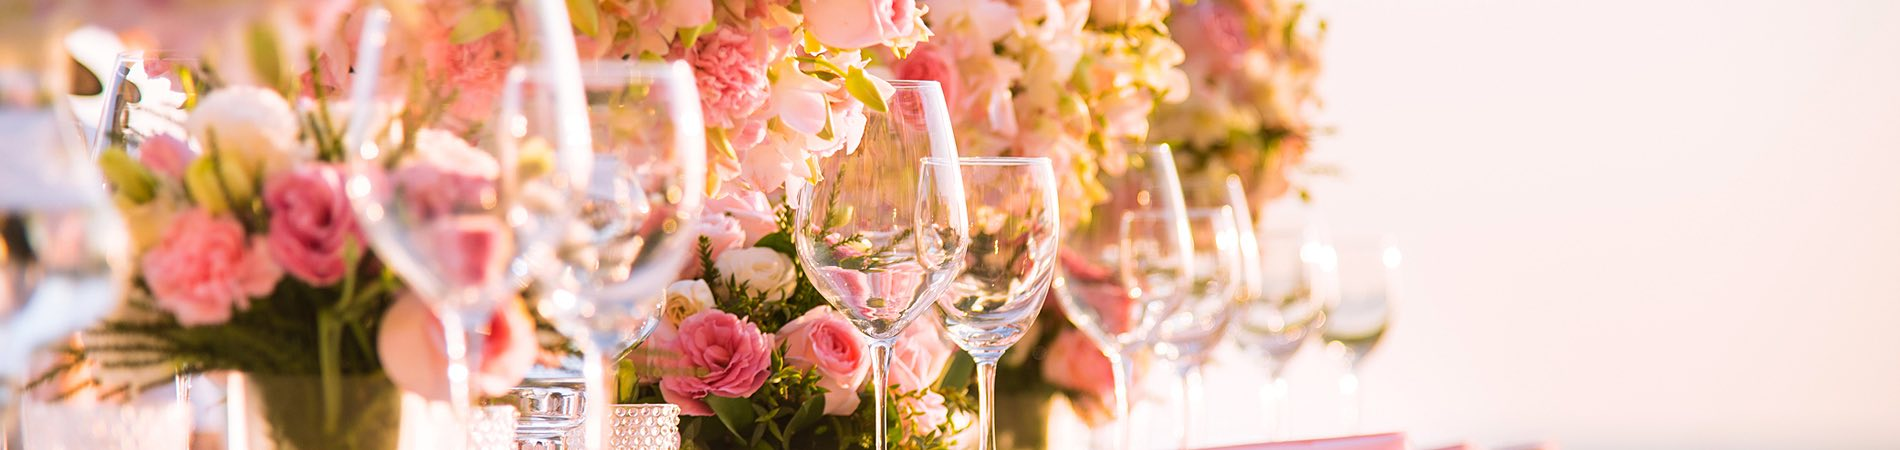 two glasses and a floral arrangement